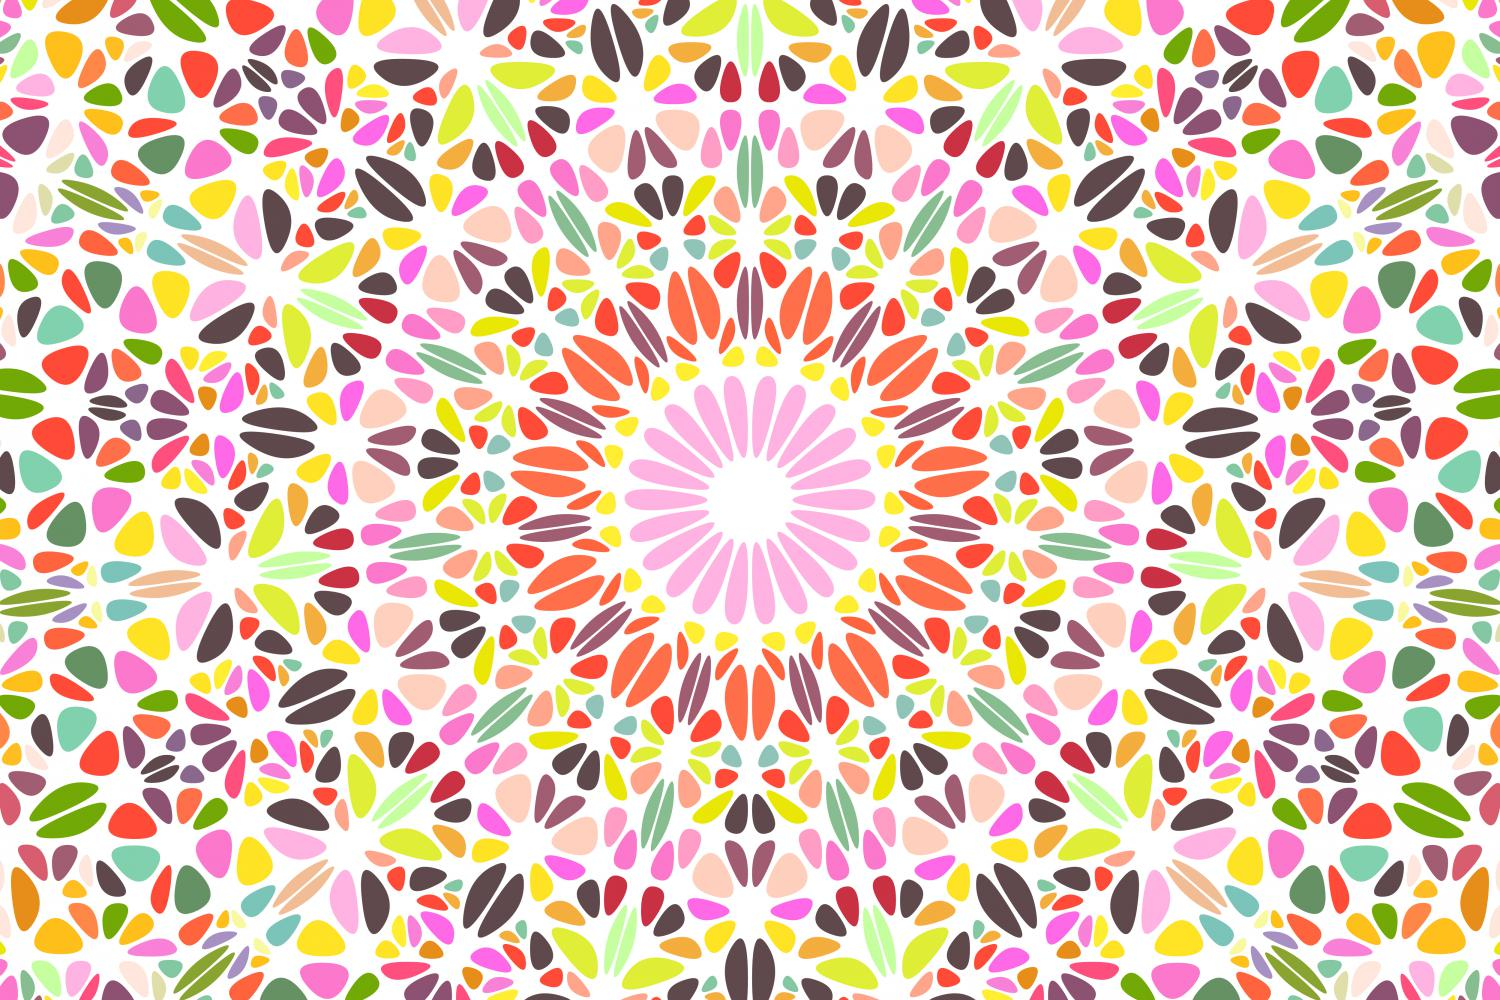 48 Floral Mandala Backgrounds example image 3